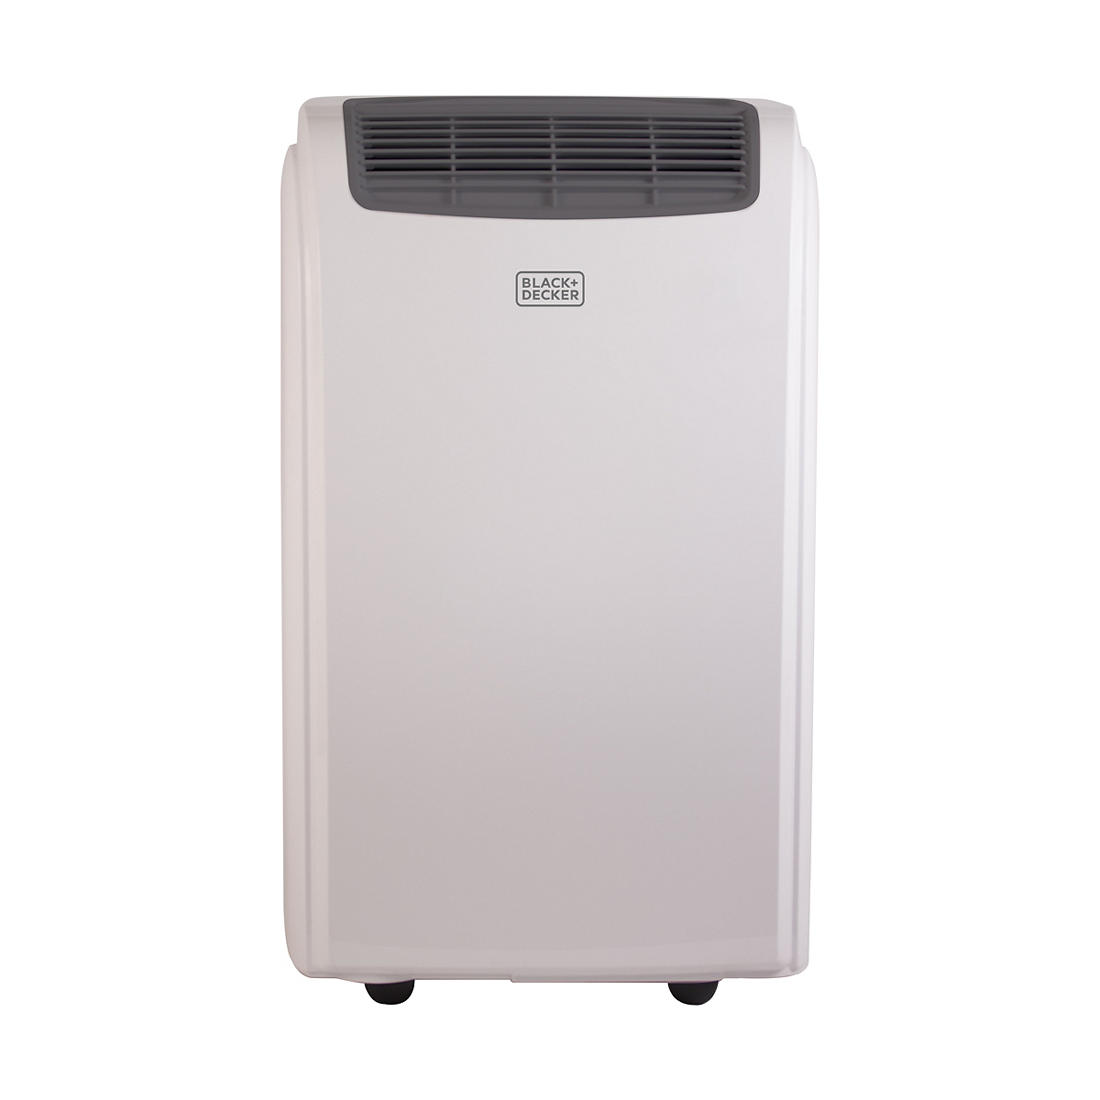 Air Conditioner Fan >> Black Decker 12 000 Btu 4 In 1 Air Conditioner With Heater Dehumidifier And Fan Functions